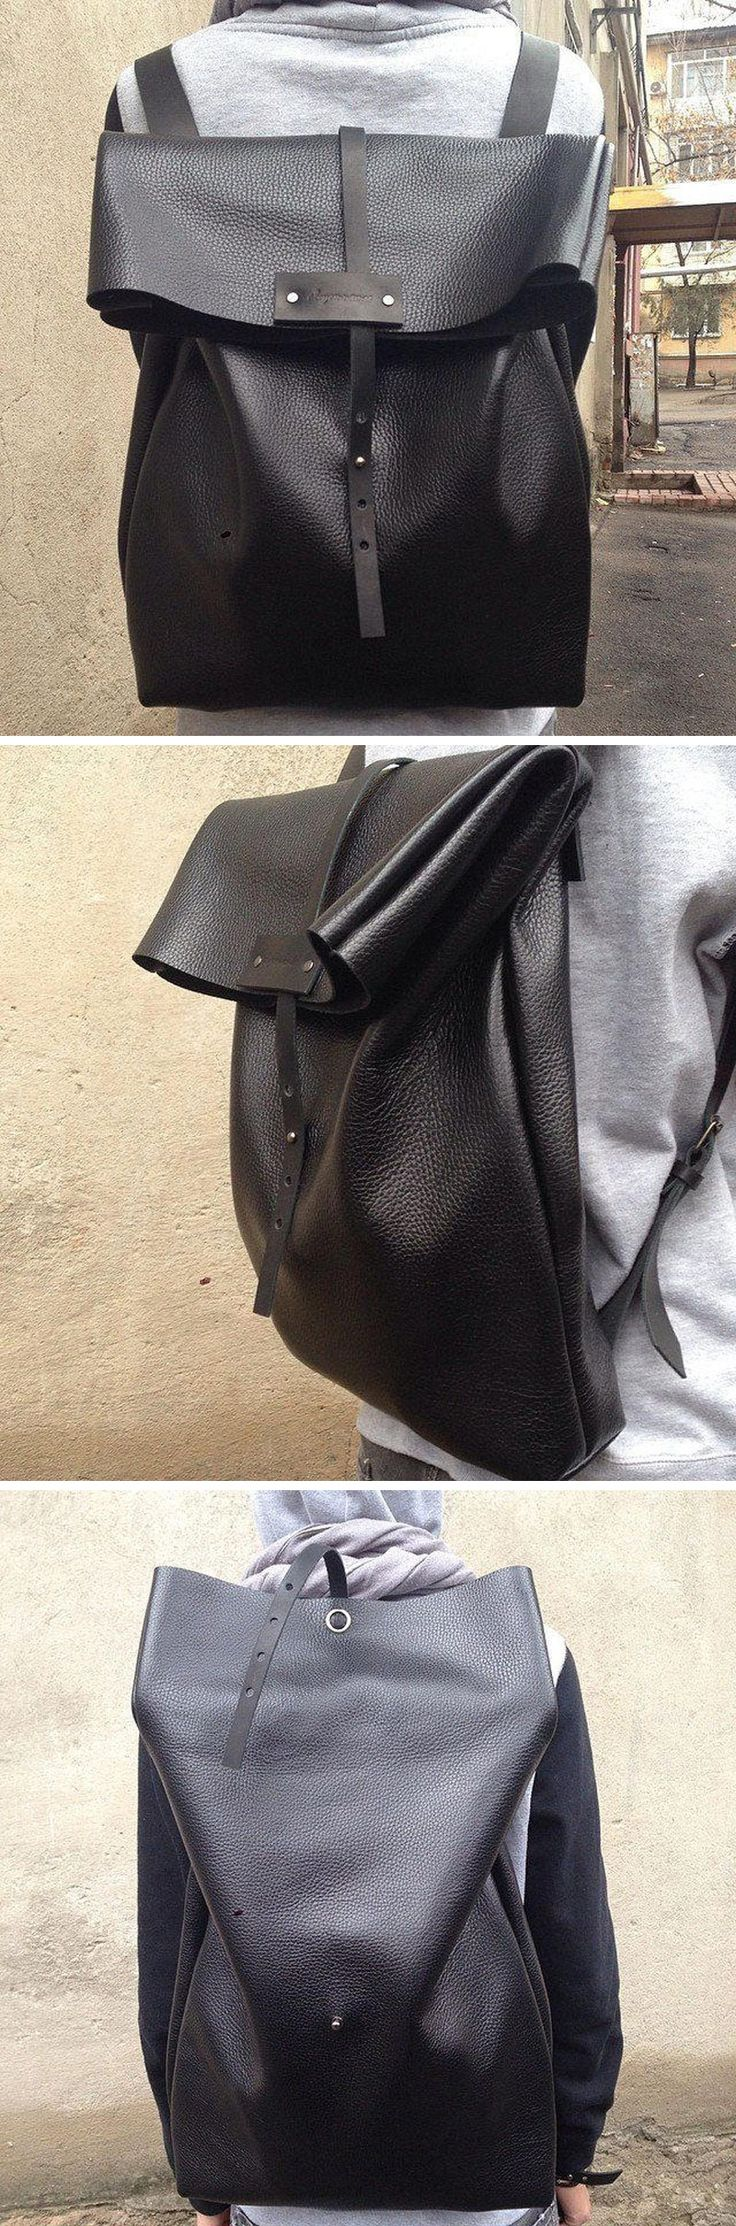 This oversized black leather backpack is handmade and modern in design. The adjustable closing strap allows the bag to evolve to an even larger bag.